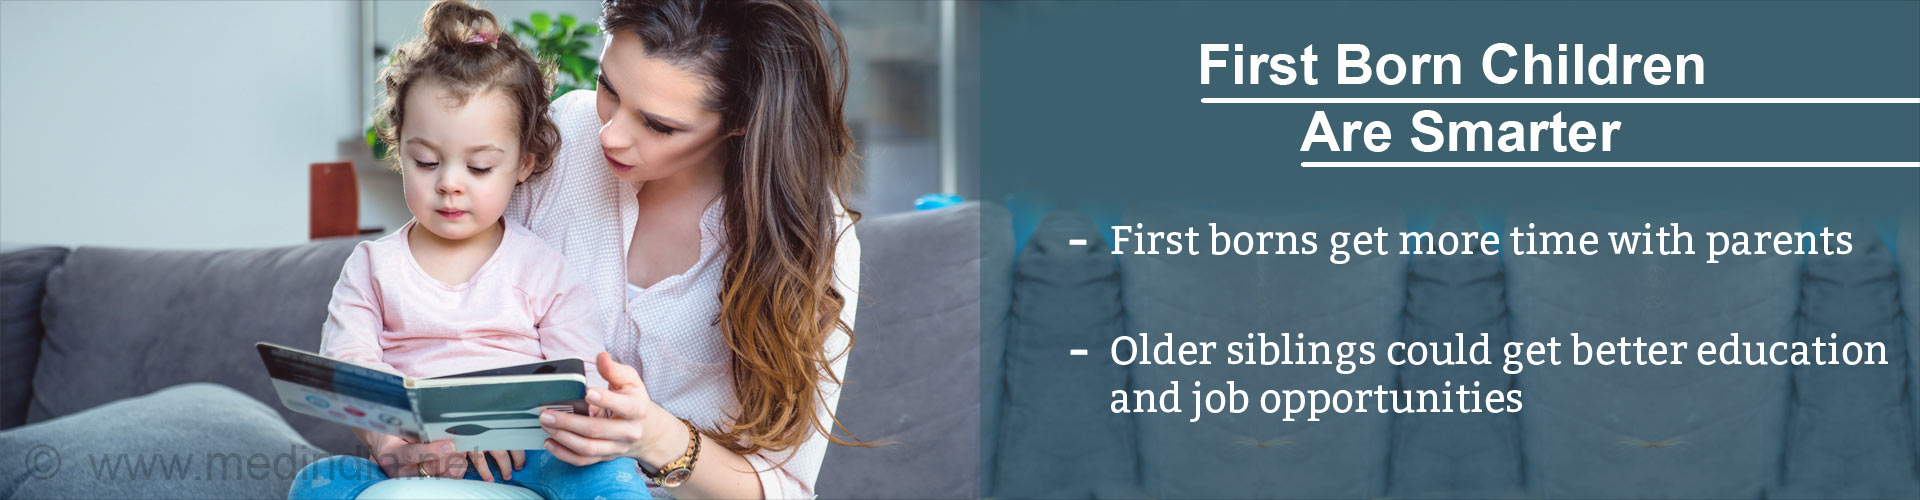 First born children are smarter - First borns get more time with parents - Older siblings could get better education and job opportunities